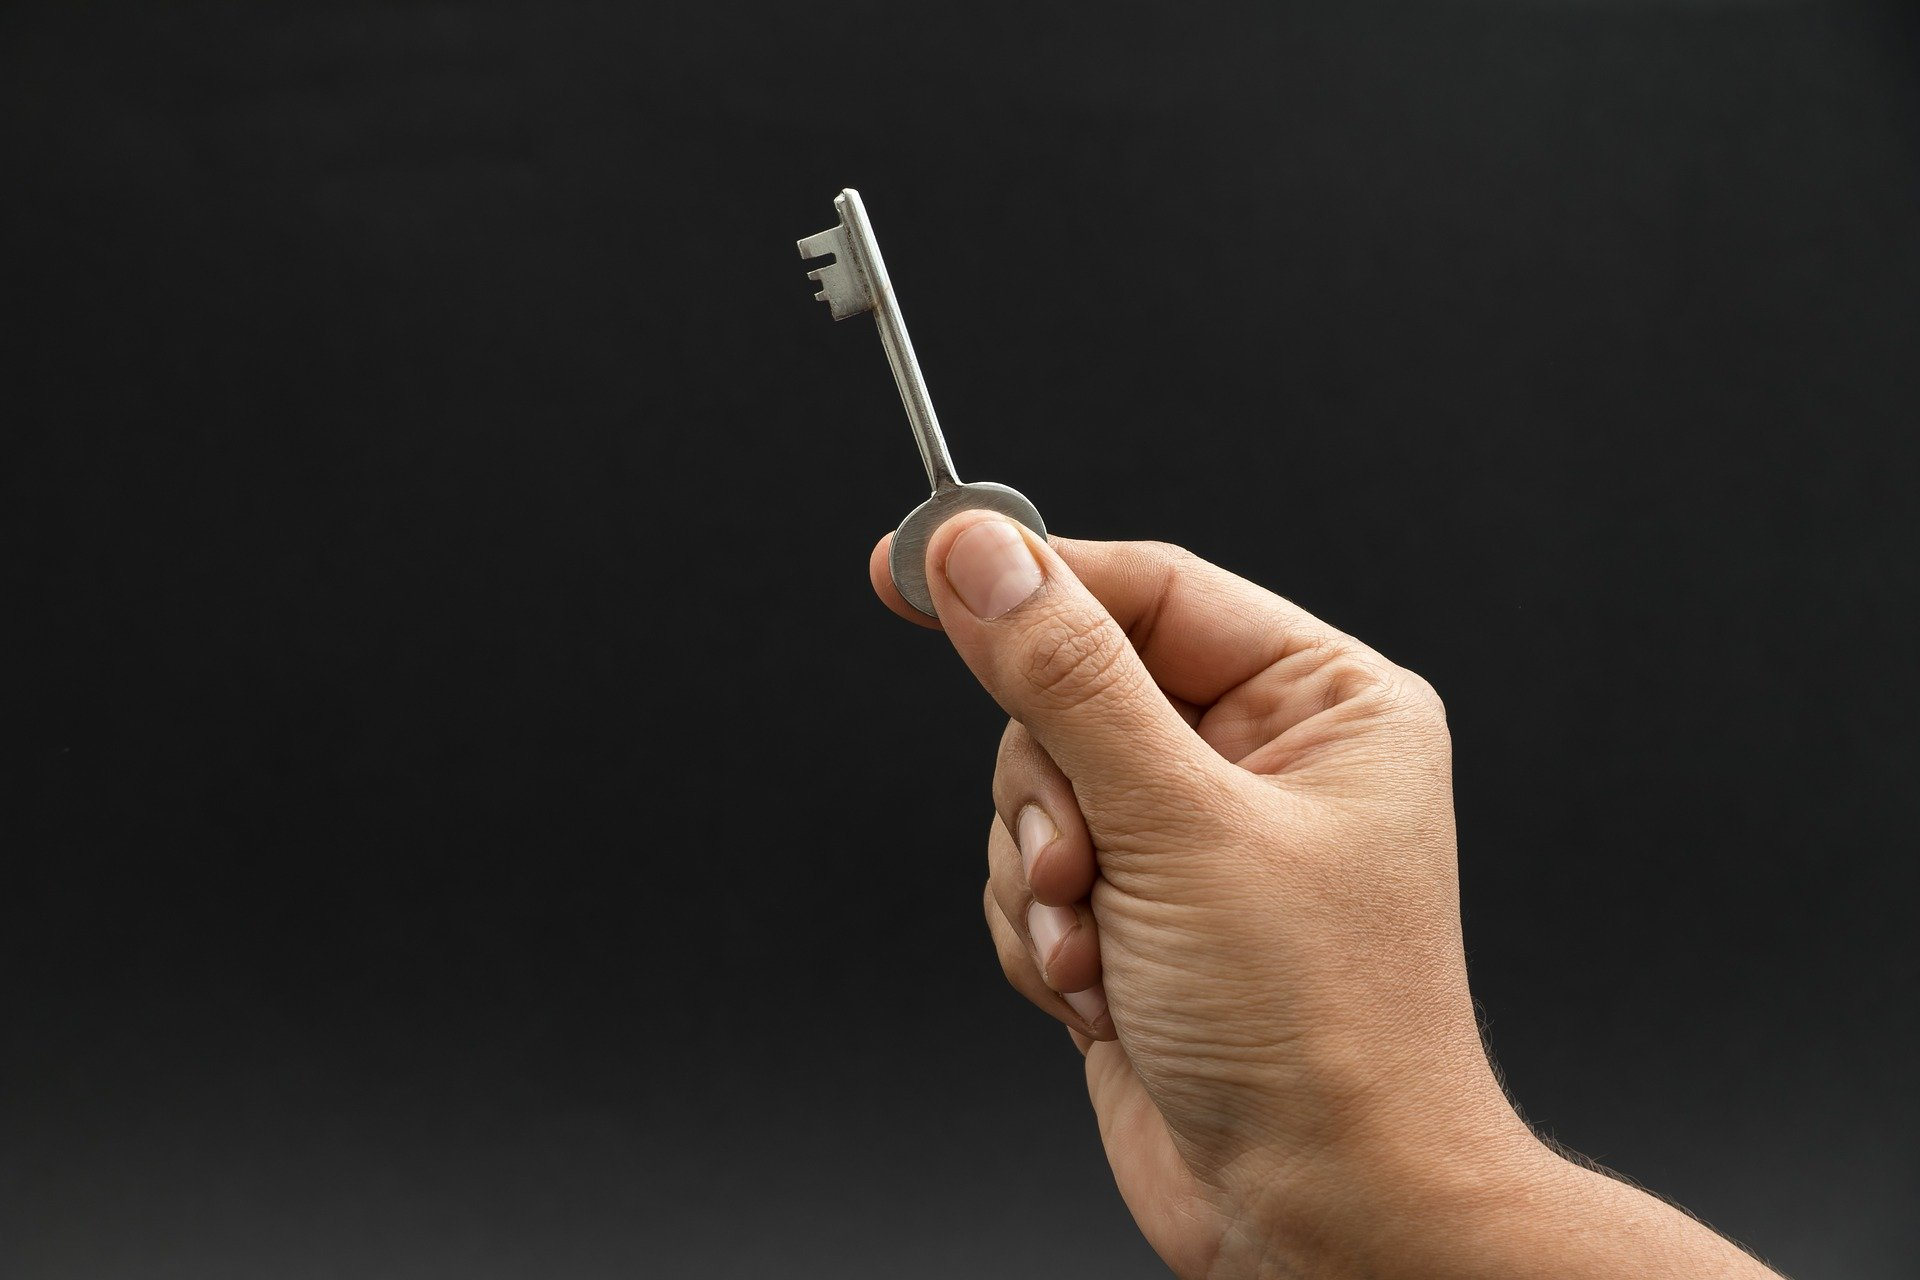 A hand holding up a key